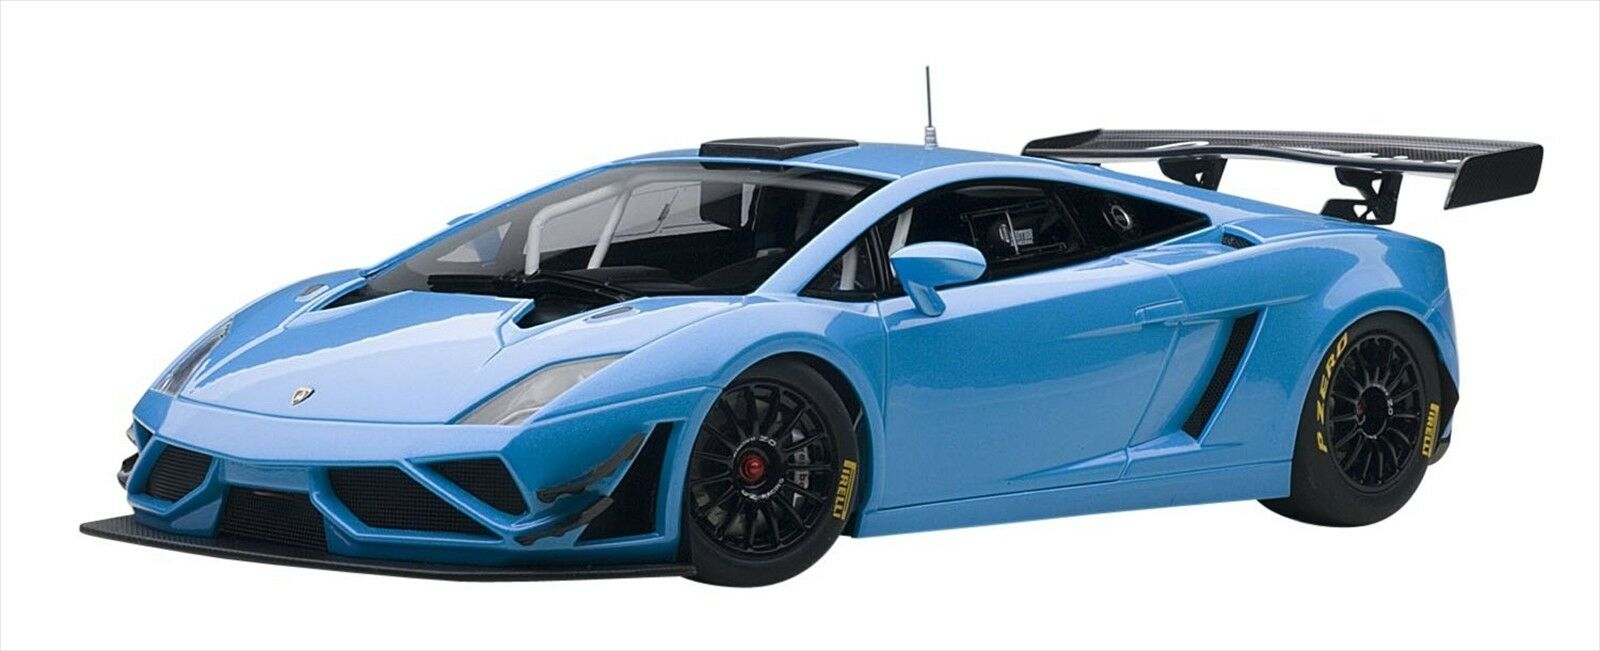 AUTOart 1/18 Lamborghini Gallardo GT3 FL2 2013 blu Composite Model 81359 NEW